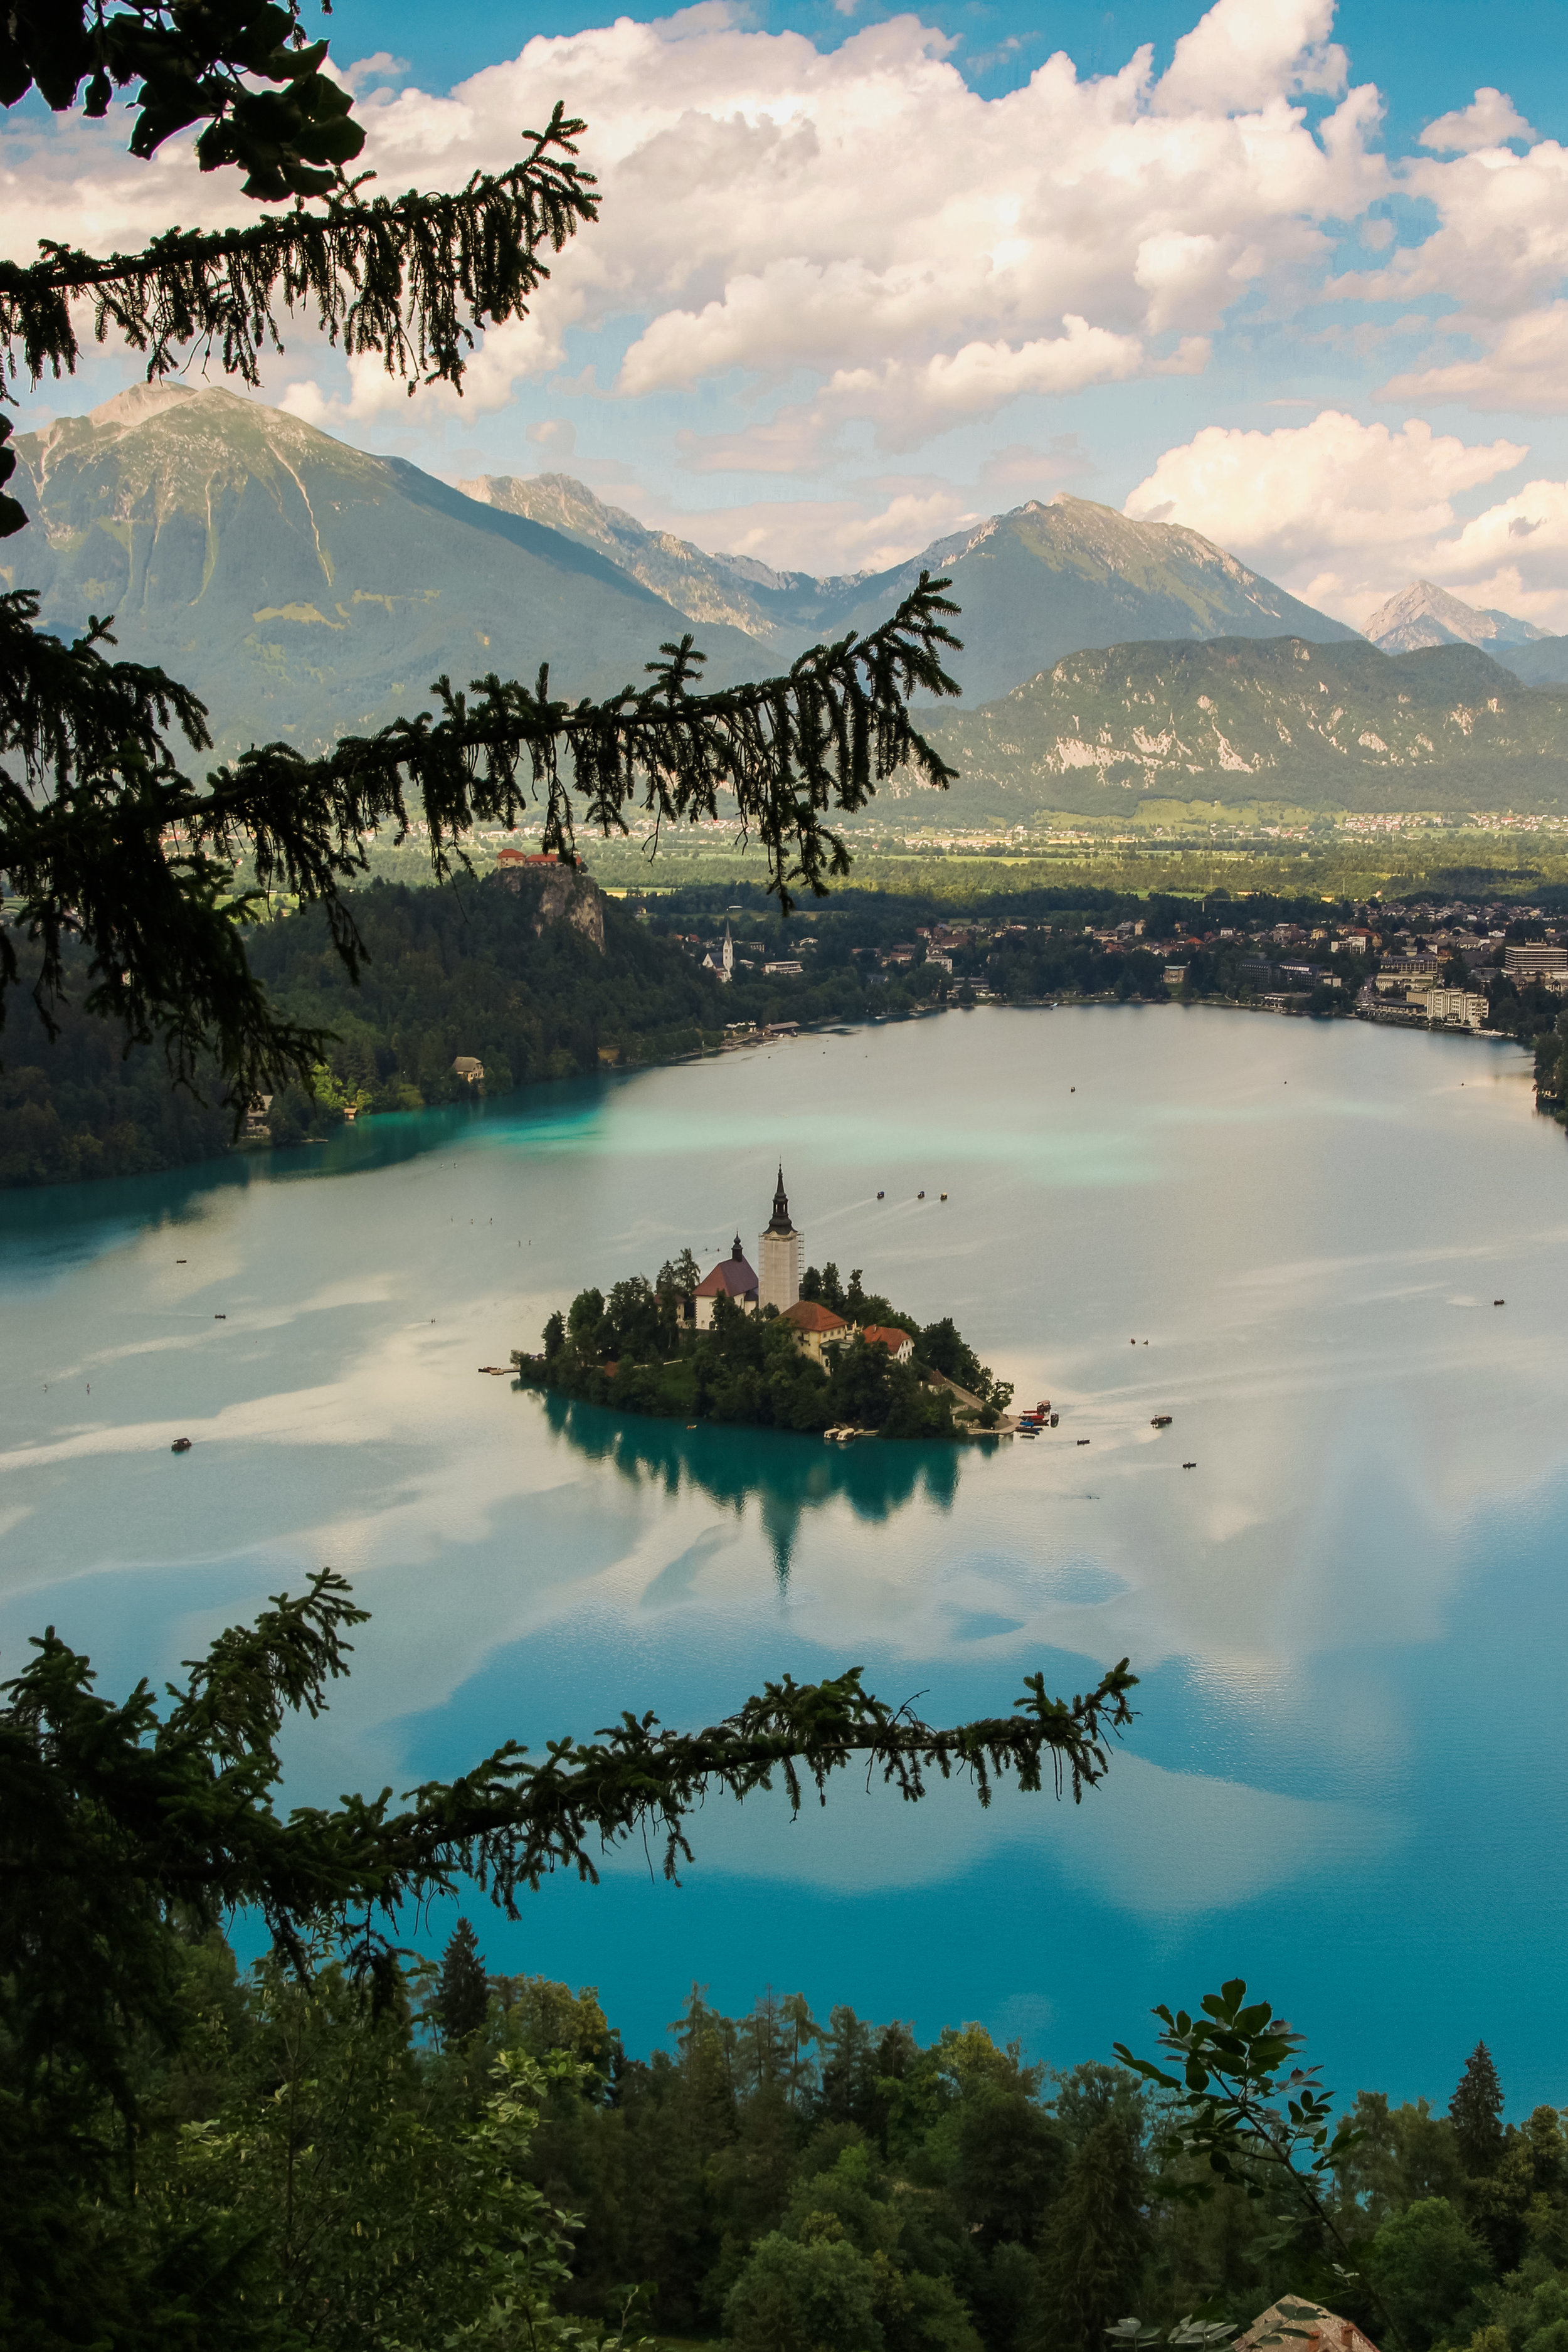 """- My next task was to find the famed viewpoints and get one of the shots of Lake Bled that I'd been dreaming of. I was forewarned that they were steep and challenging, and I went for the """"worst"""" one – Mala Osojnica. The other, Ostrica, is less strenuous. If you have time, it appears that both are worthwhile and offer their own unique view of the lake. It has also come to my attention that there are signs directing you to both. I followed my Google maps like an idiot and ended up stumbling through someone's backyard until I came across a path that ultimately led to Mala Osojnica. Not a single sign was seen. I've only confirmed that I made it to the right place by Googling other people's photos and finding that we all climbed the same ridiculous staircase at the end. But the good news is you'll get up there one way or the other."""